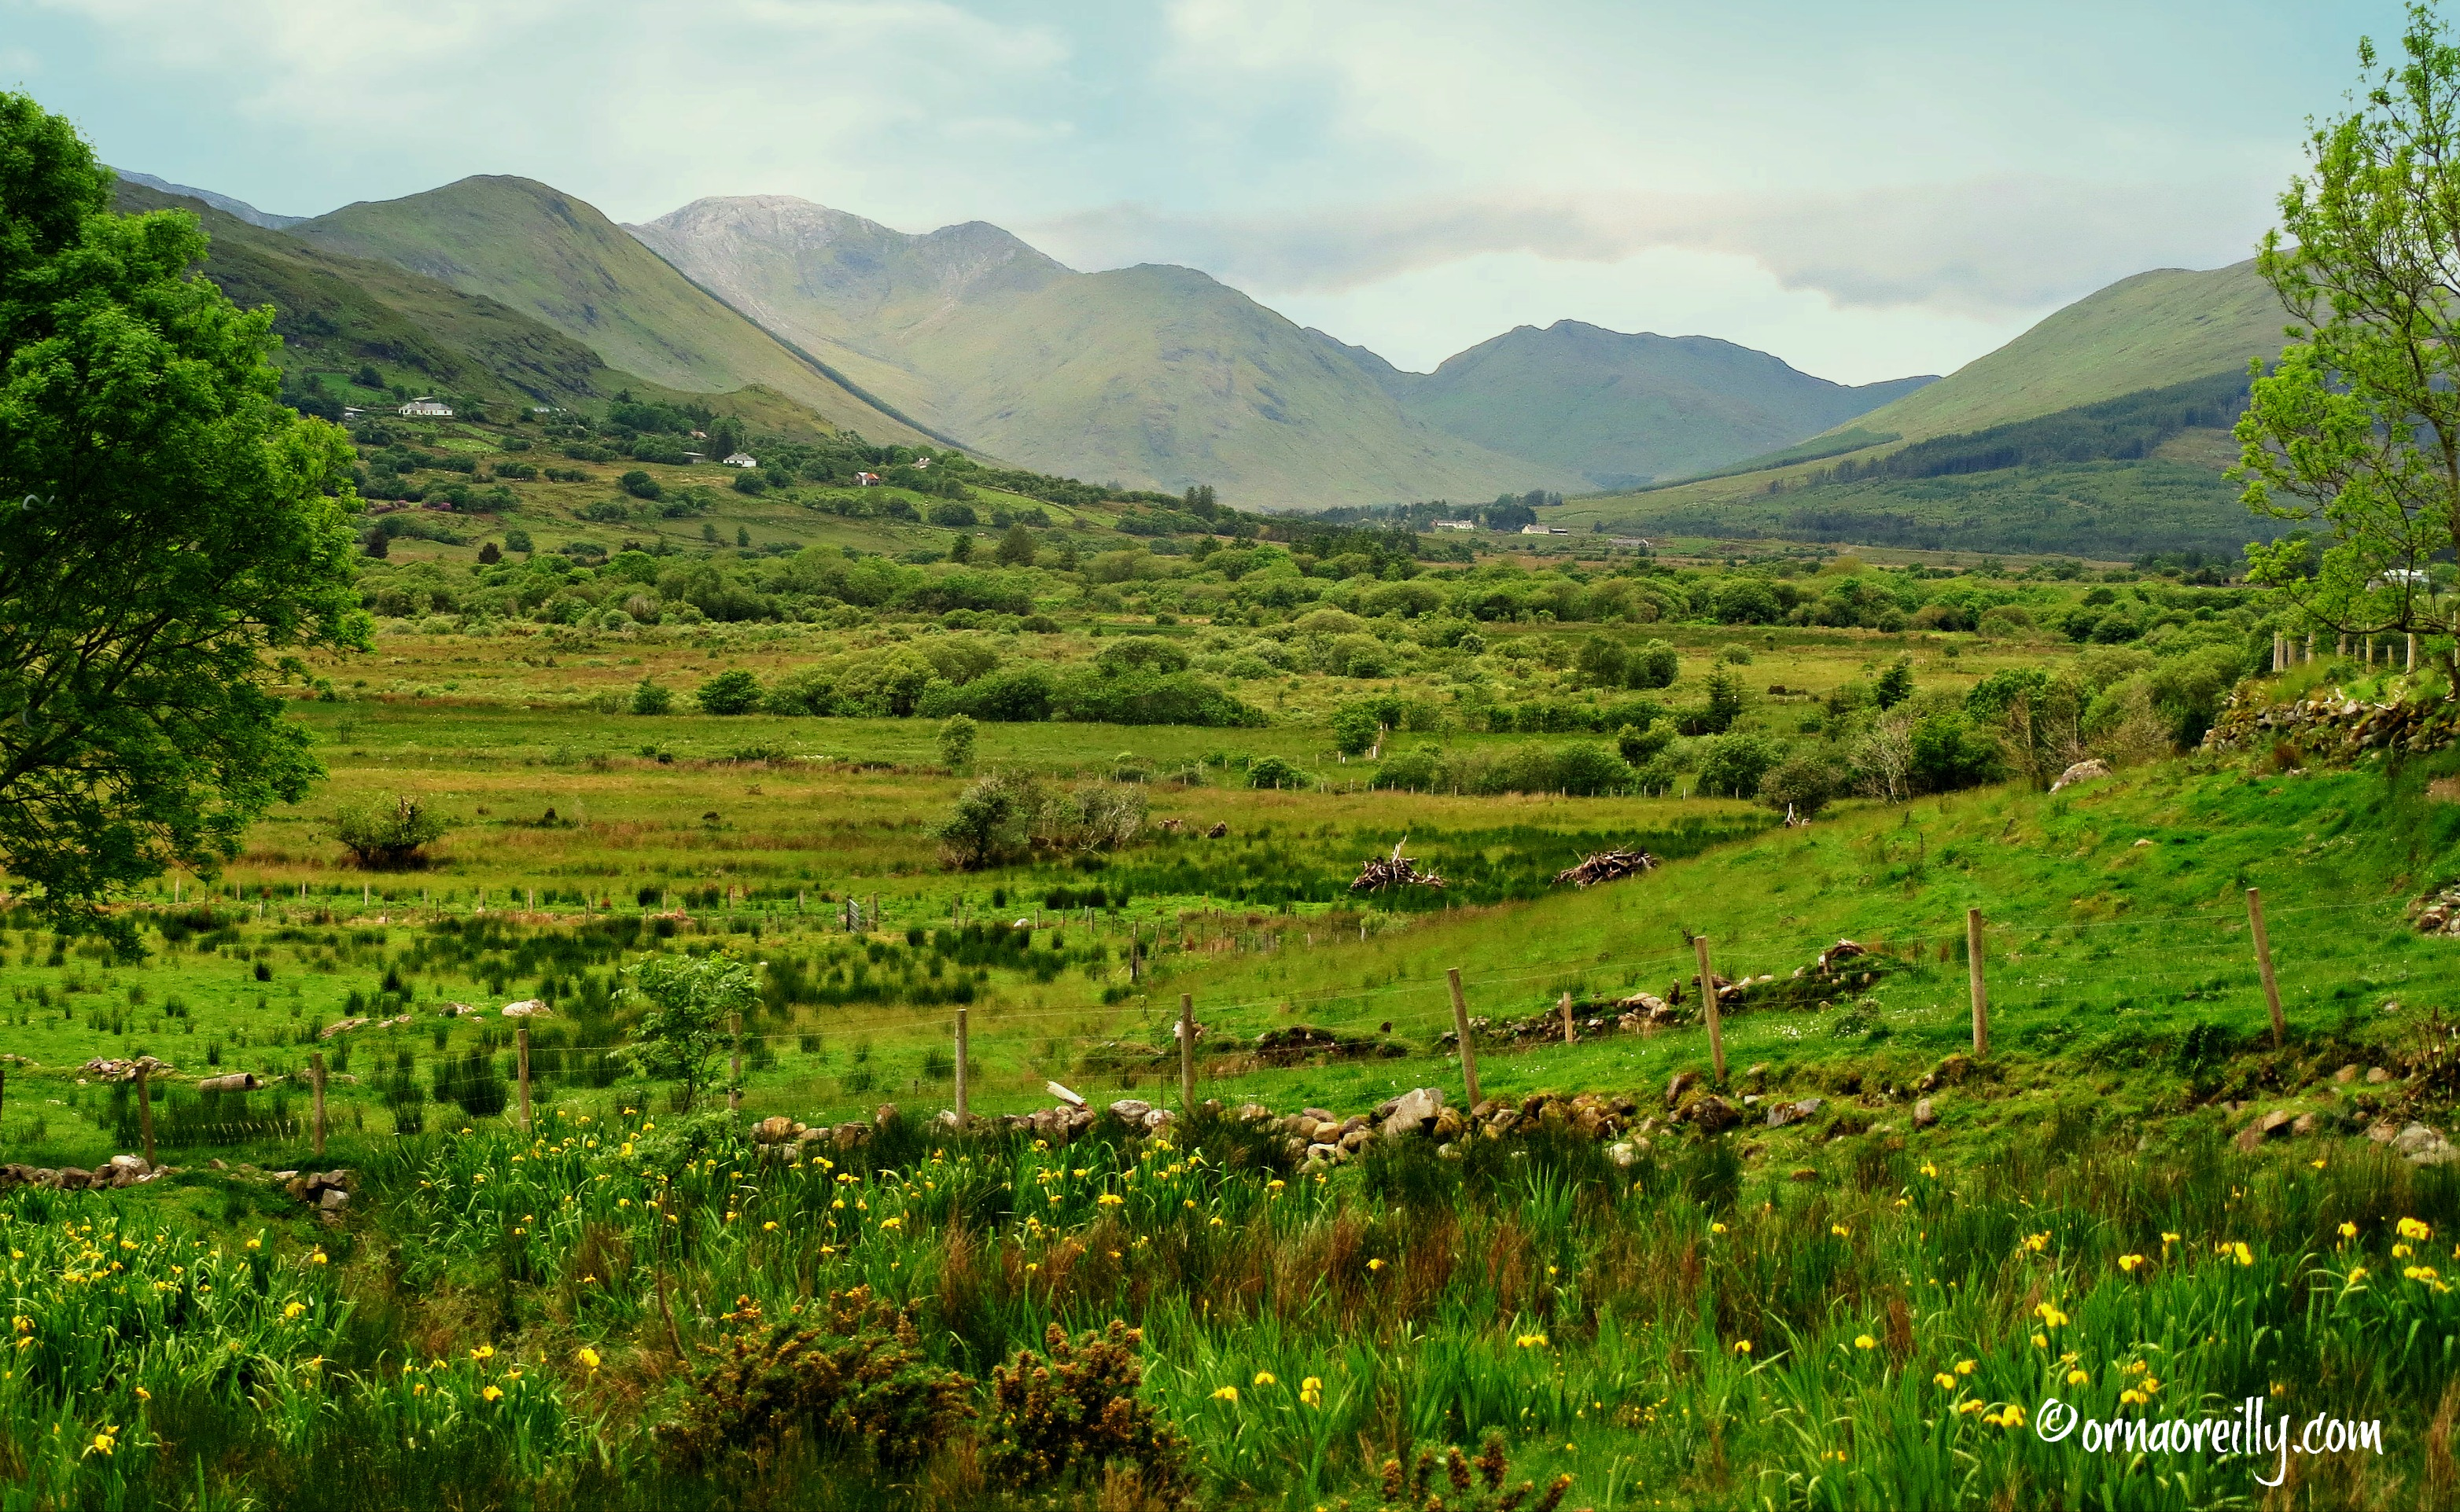 Clifden singles - Meet Clifden lonely people in Ireland